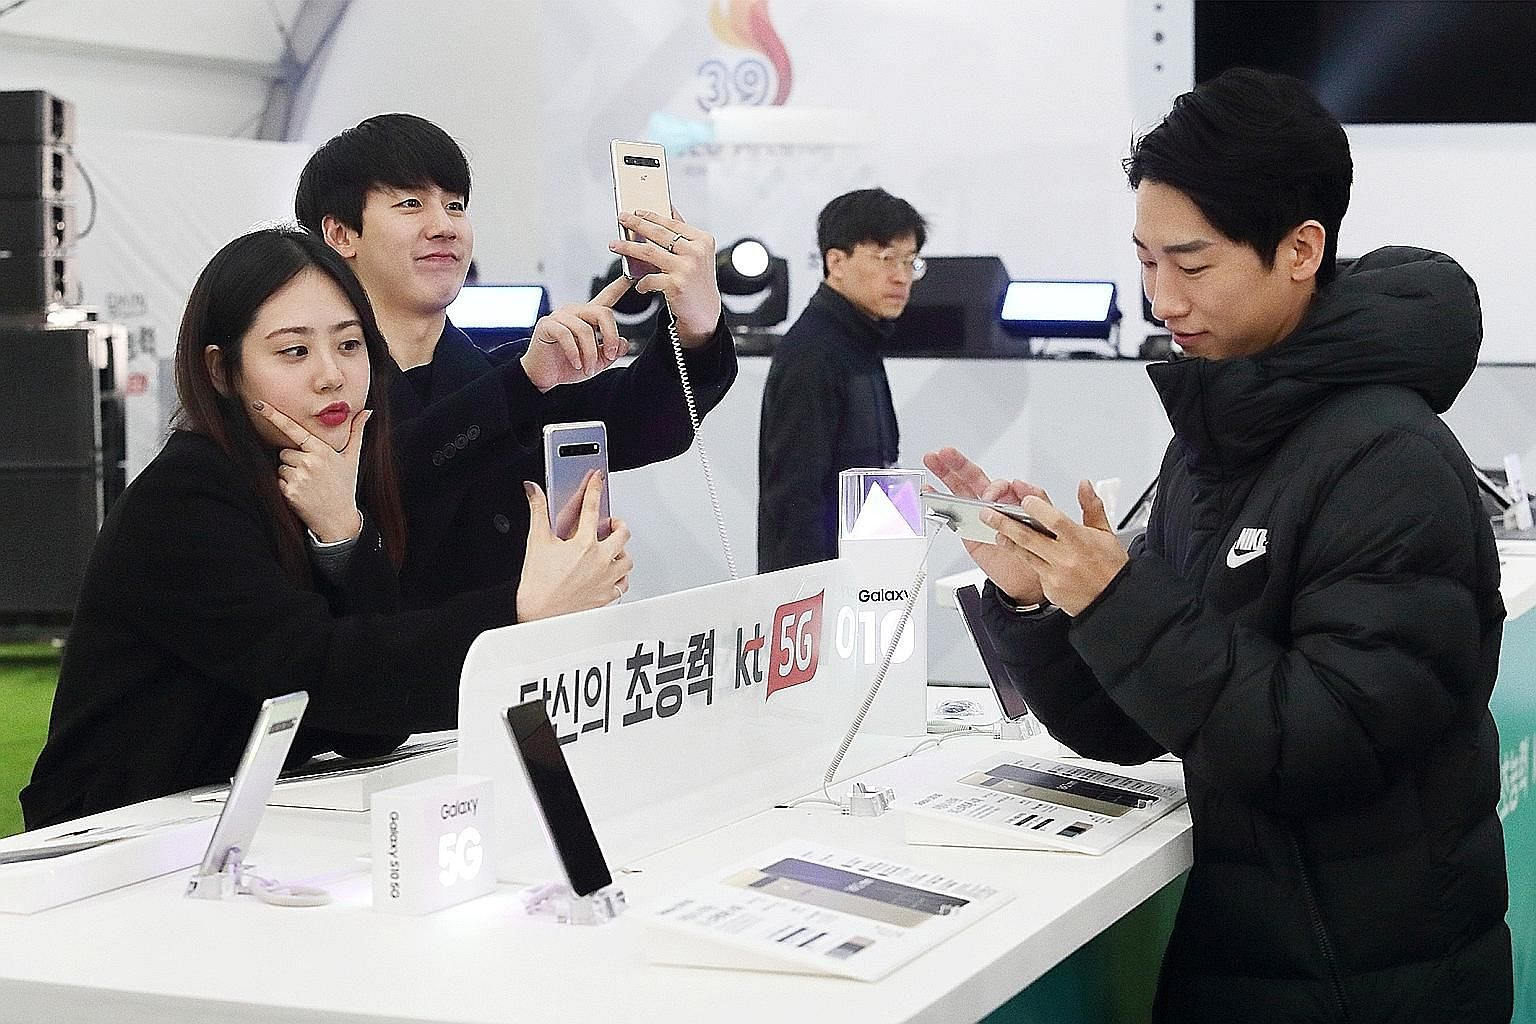 Patrons trying out Samsung's Galaxy S10 5G phones in Seoul earlier this year. In April, it was forced to delay the release of its Galaxy Fold model after reports of screen problems.